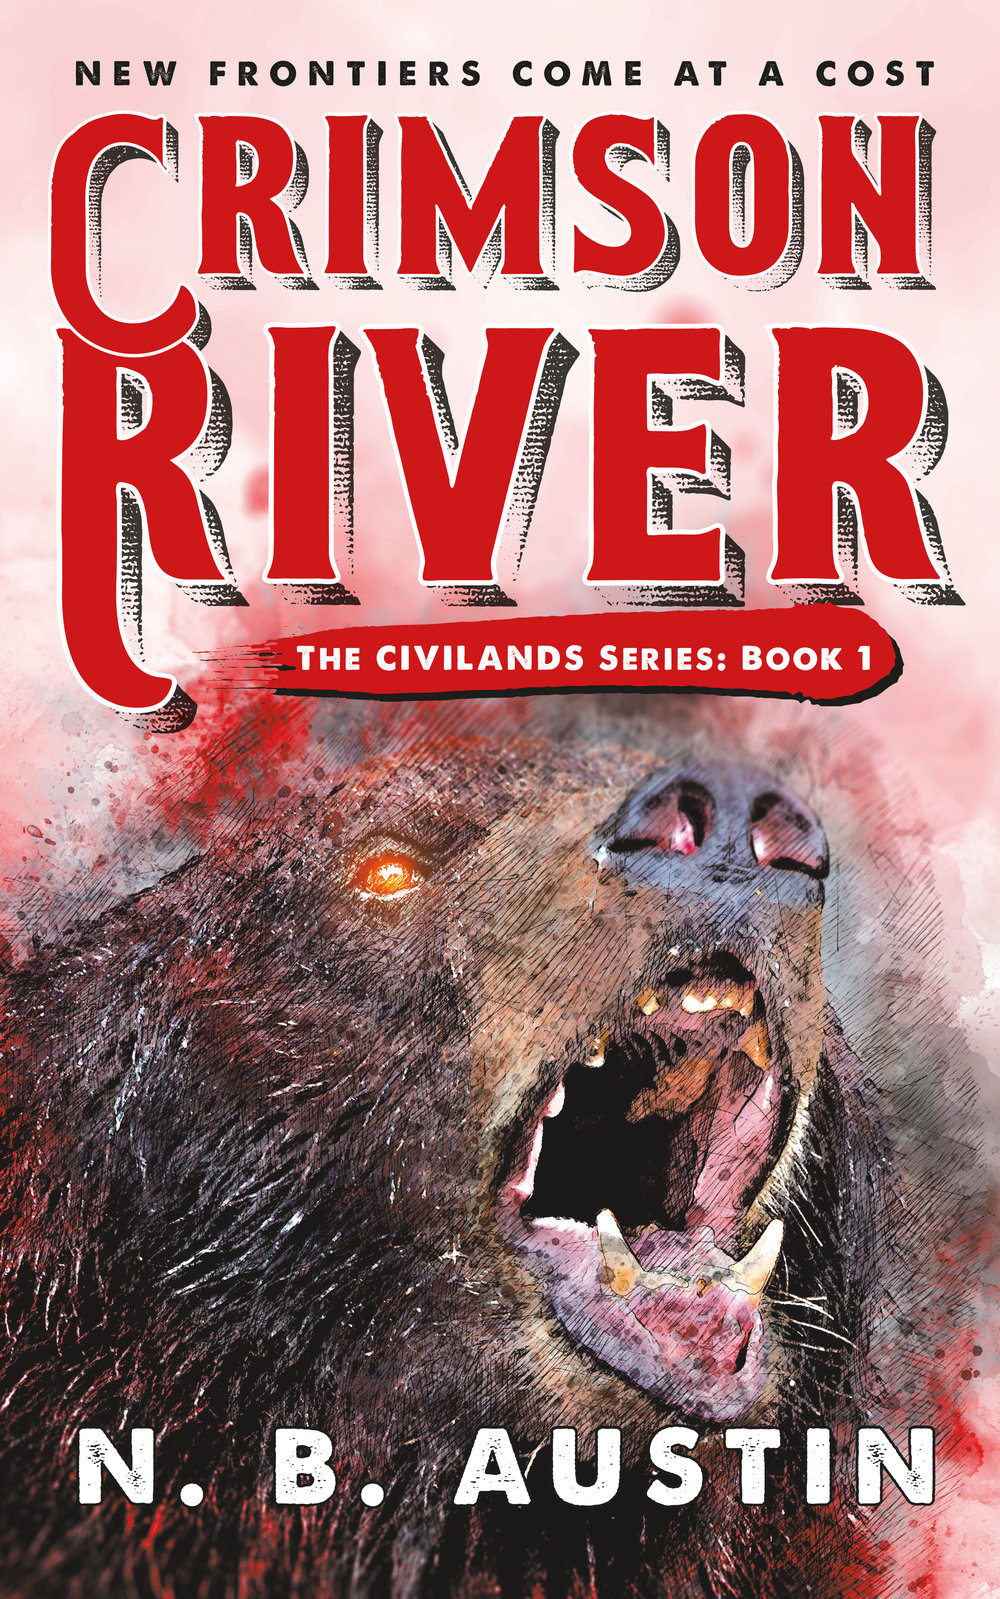 CRIMSON-RIVER-KINDLE-COVER-11-05-17 (1).jpg